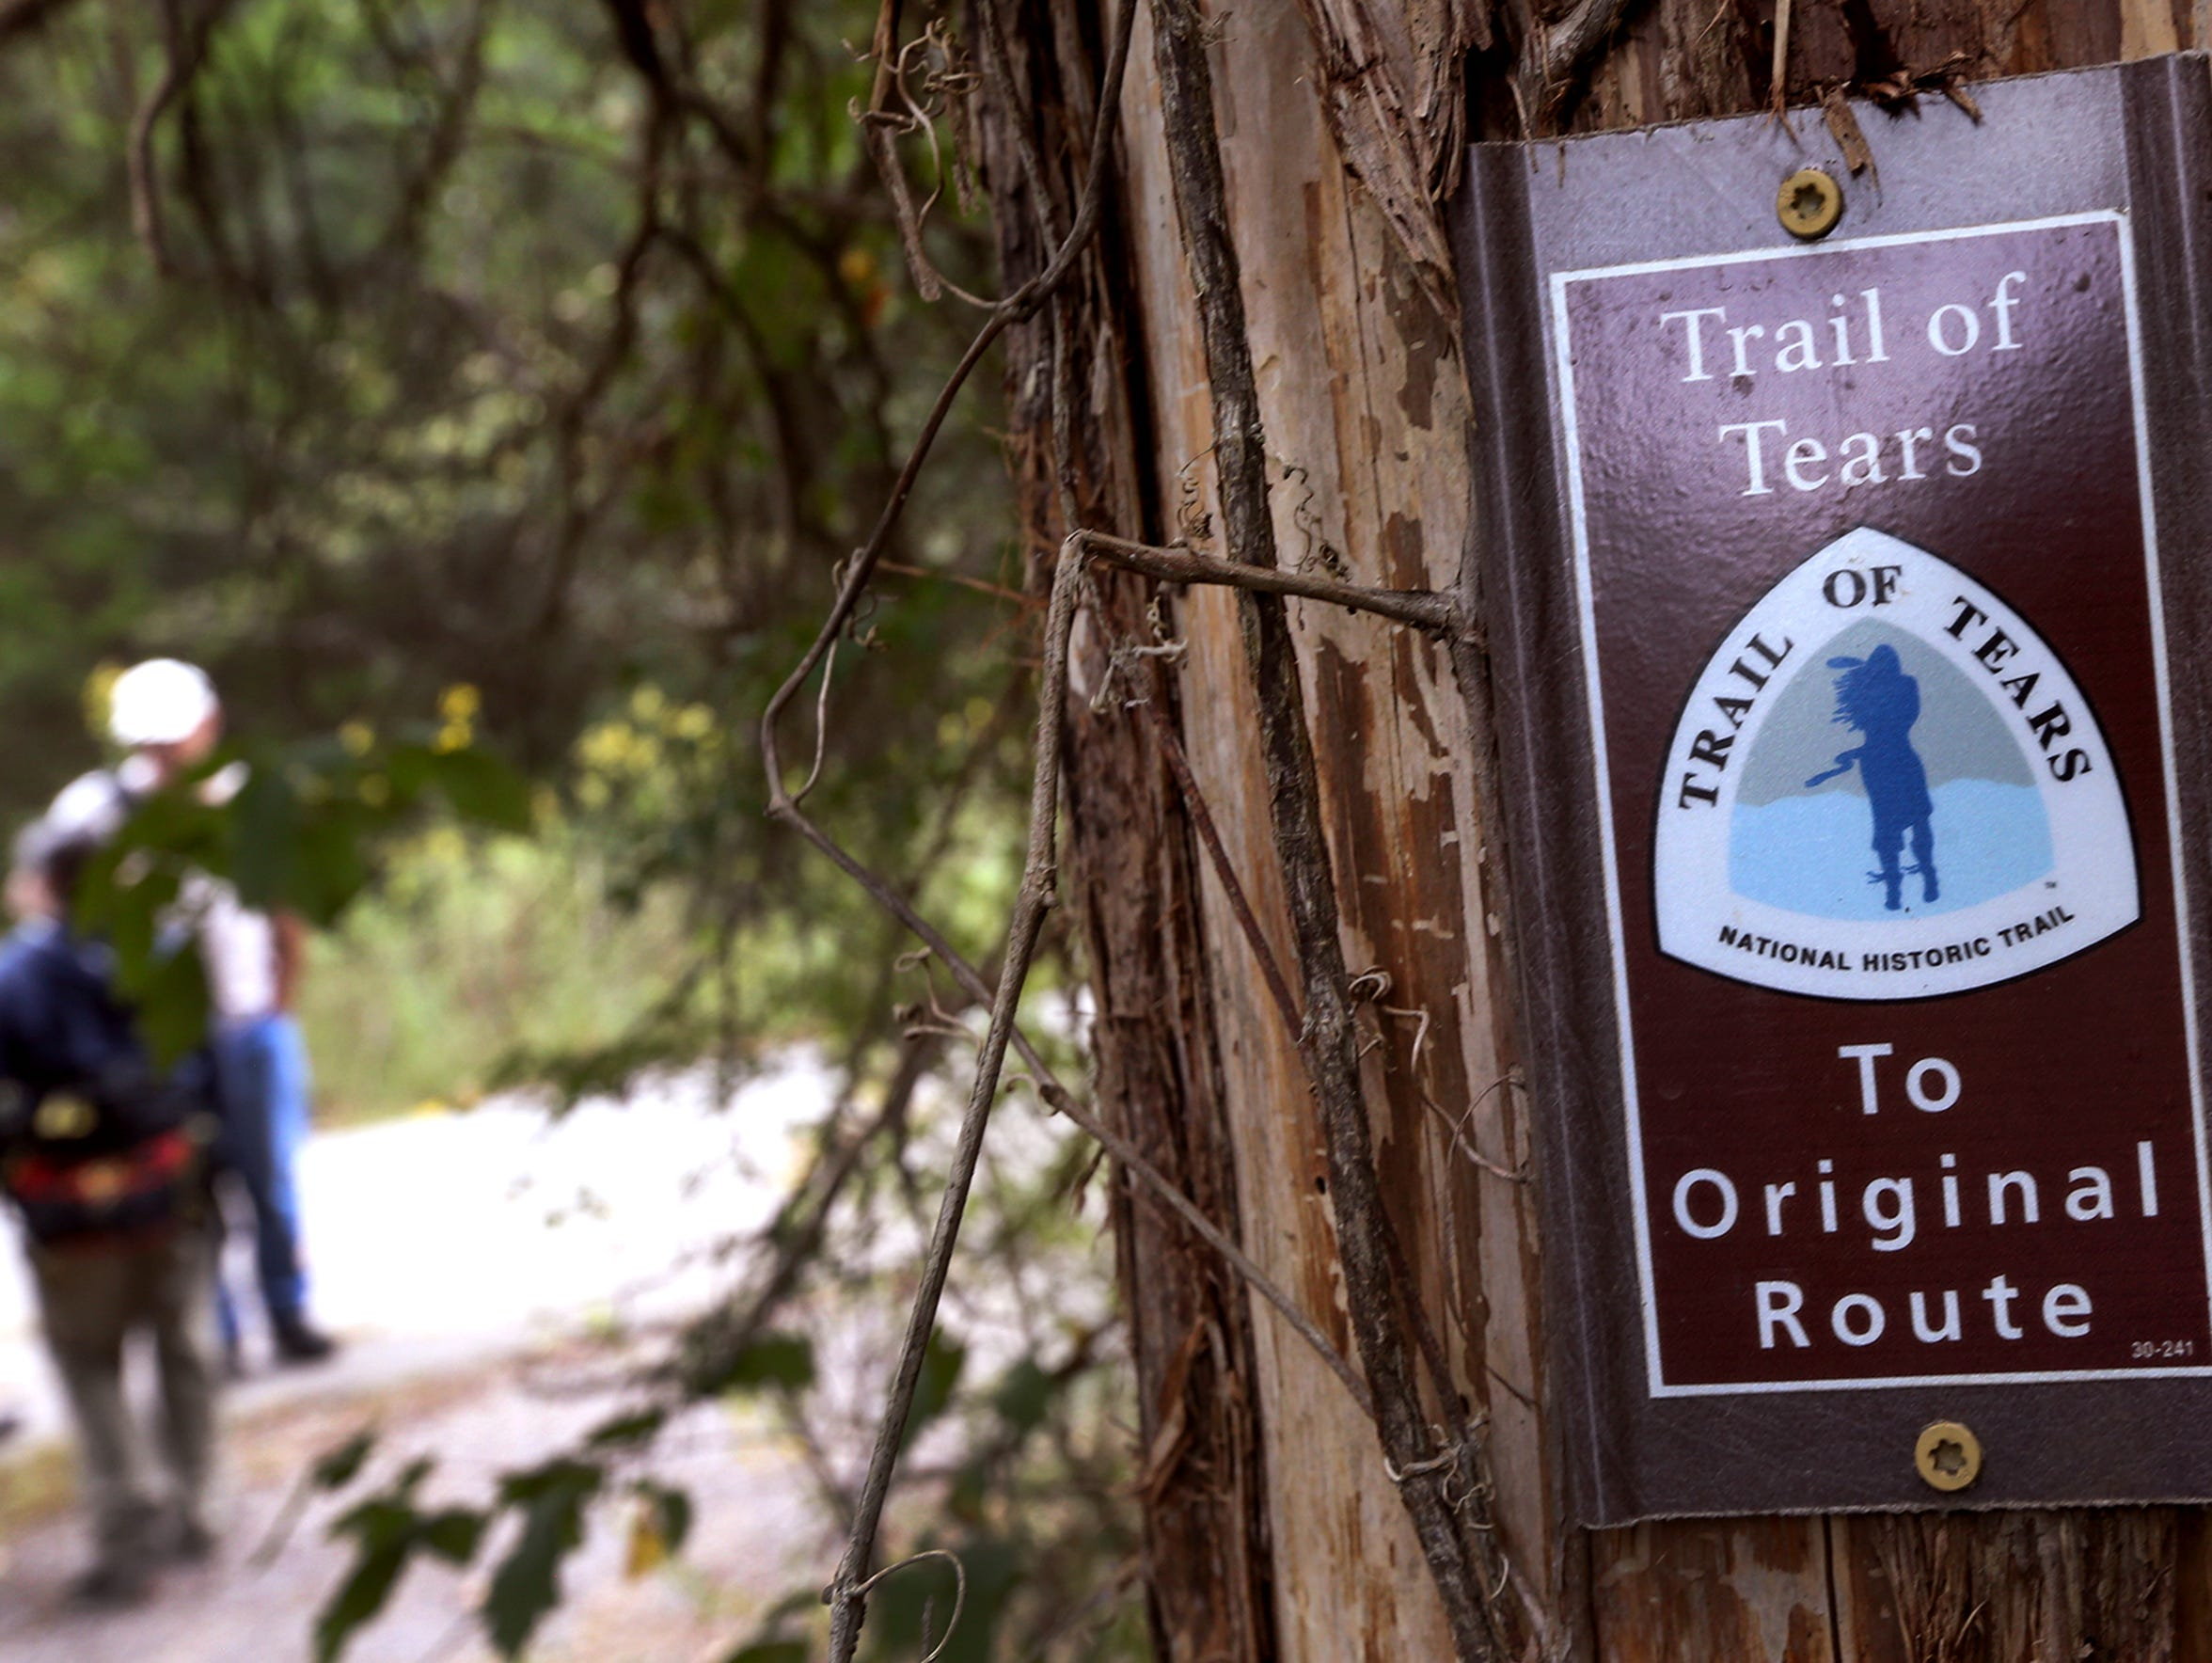 A few signs mark the location of the Trail of Tears